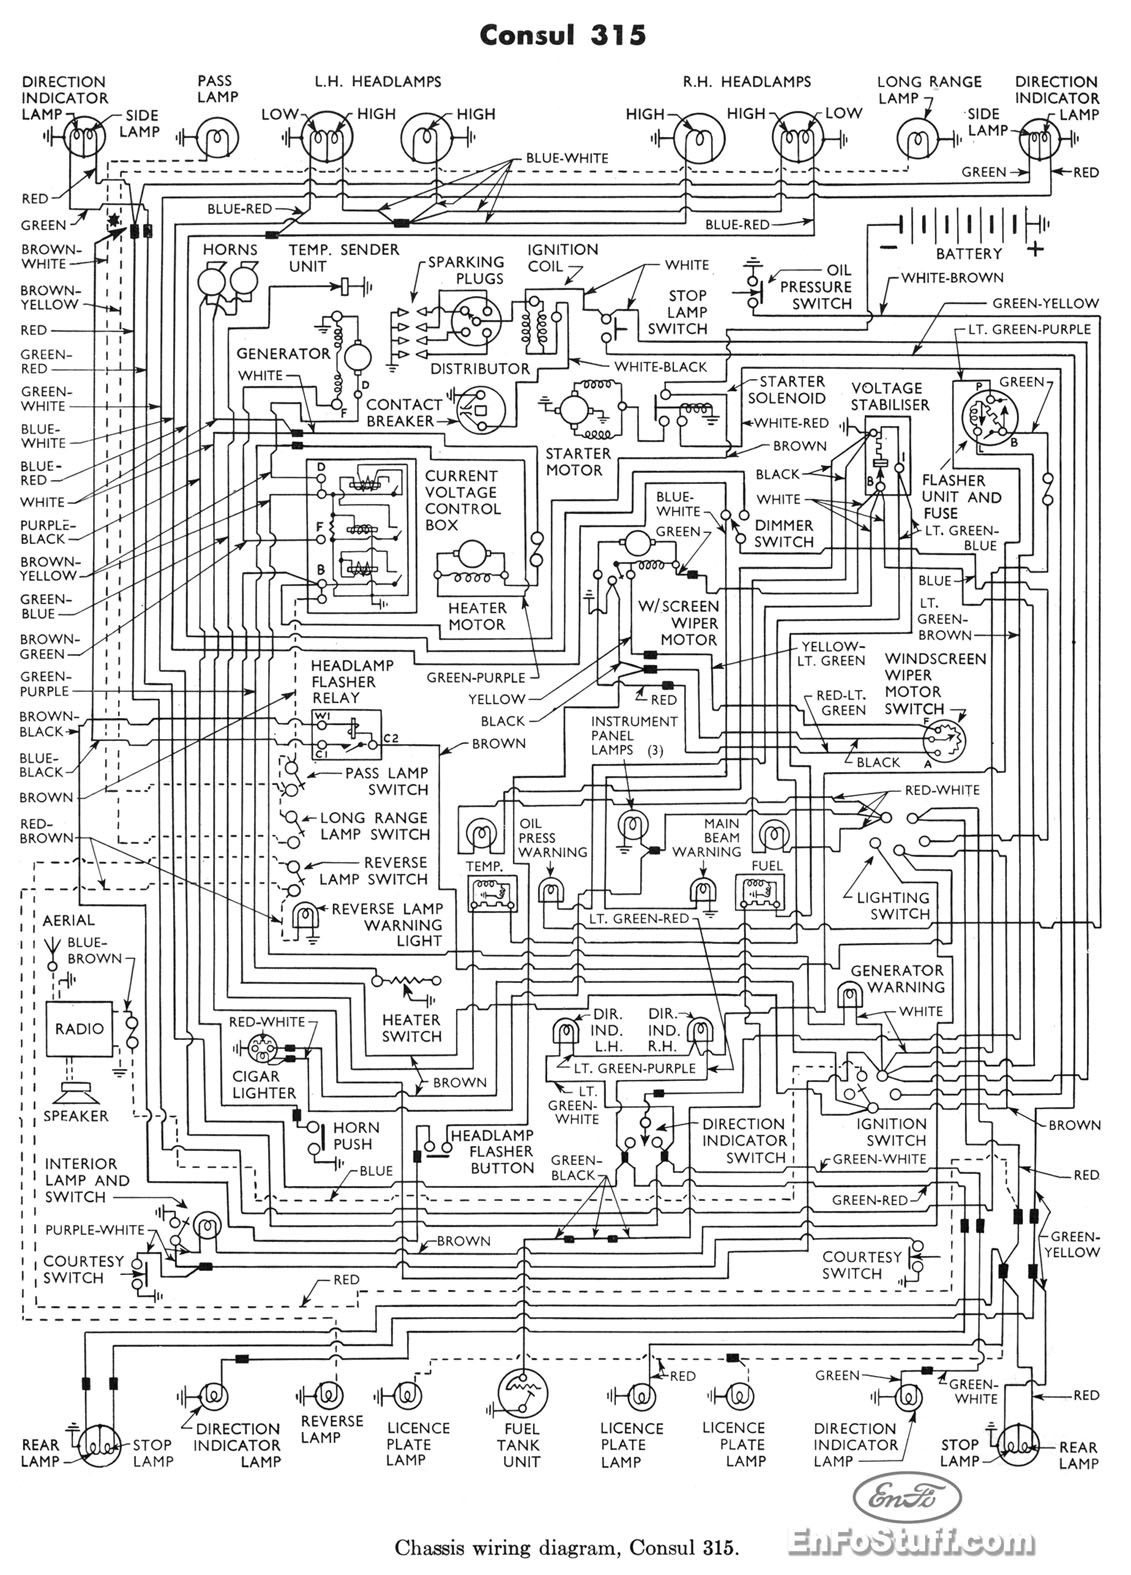 wiring diagram for 600 ford tractor the wiring diagram ford tractor wiring harness diagram vidim wiring diagram wiring diagram